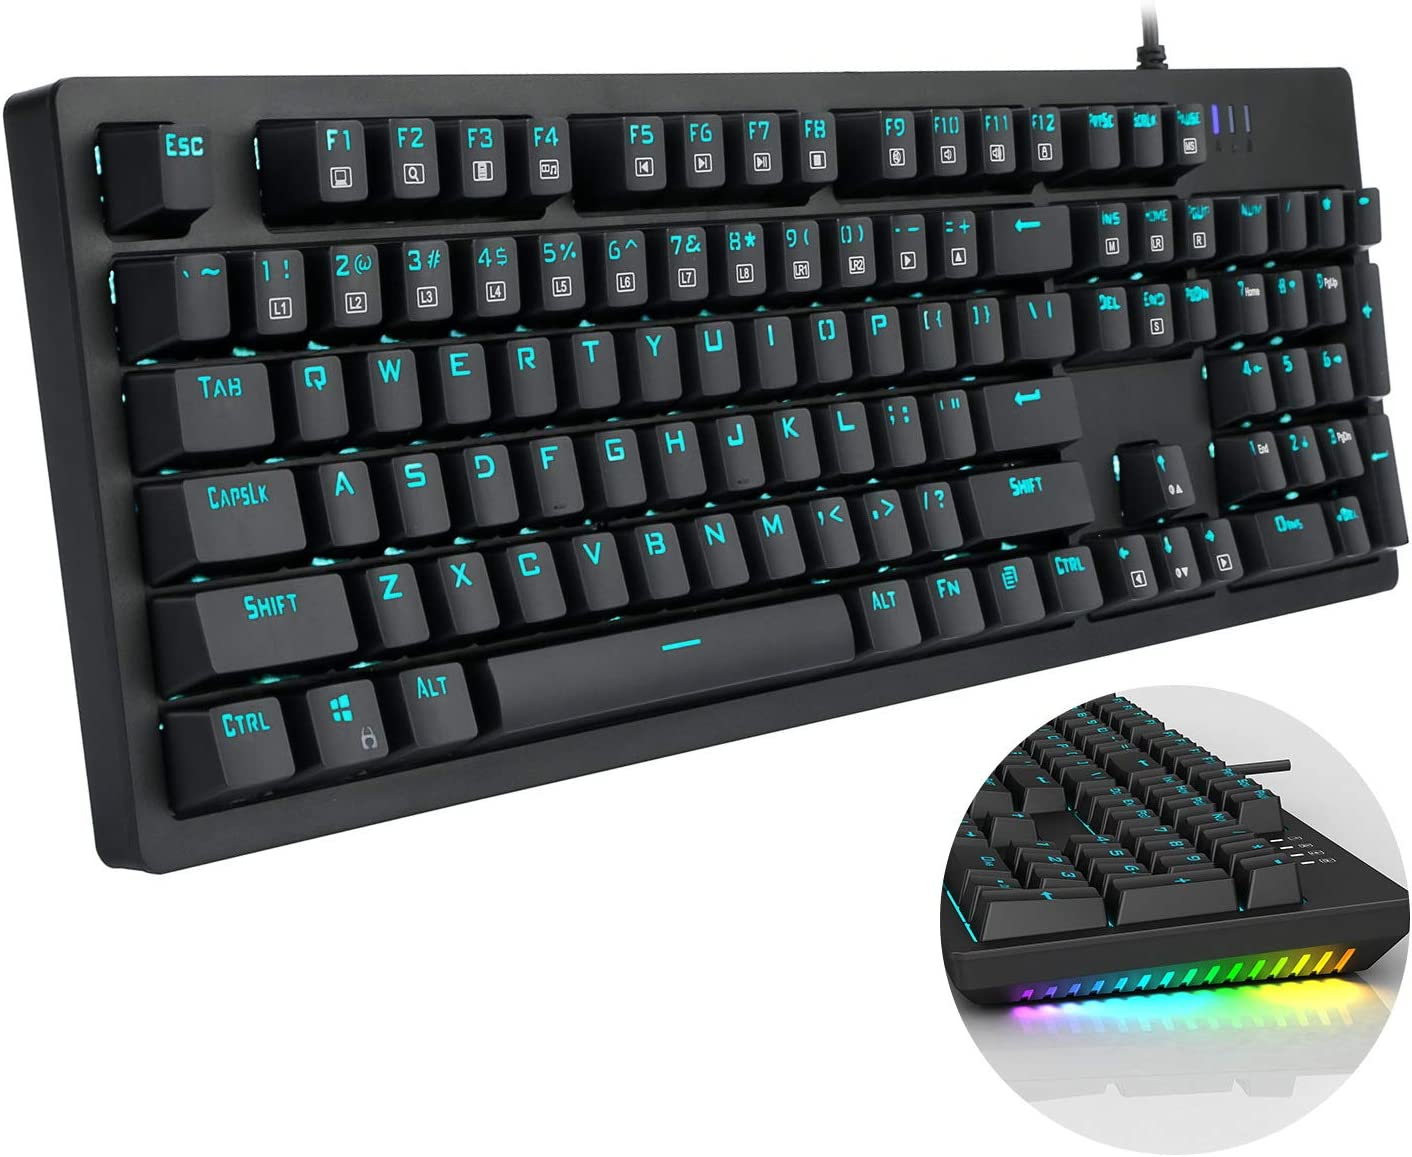 E-YOOSO Mechanical Keyboard Wired Gaming Keyboard with Blue Switches LED Backlit, 104 Keys N-Key Rollover Anti-Ghosting Computer Keyboard for PC Desktop Gamers, Black